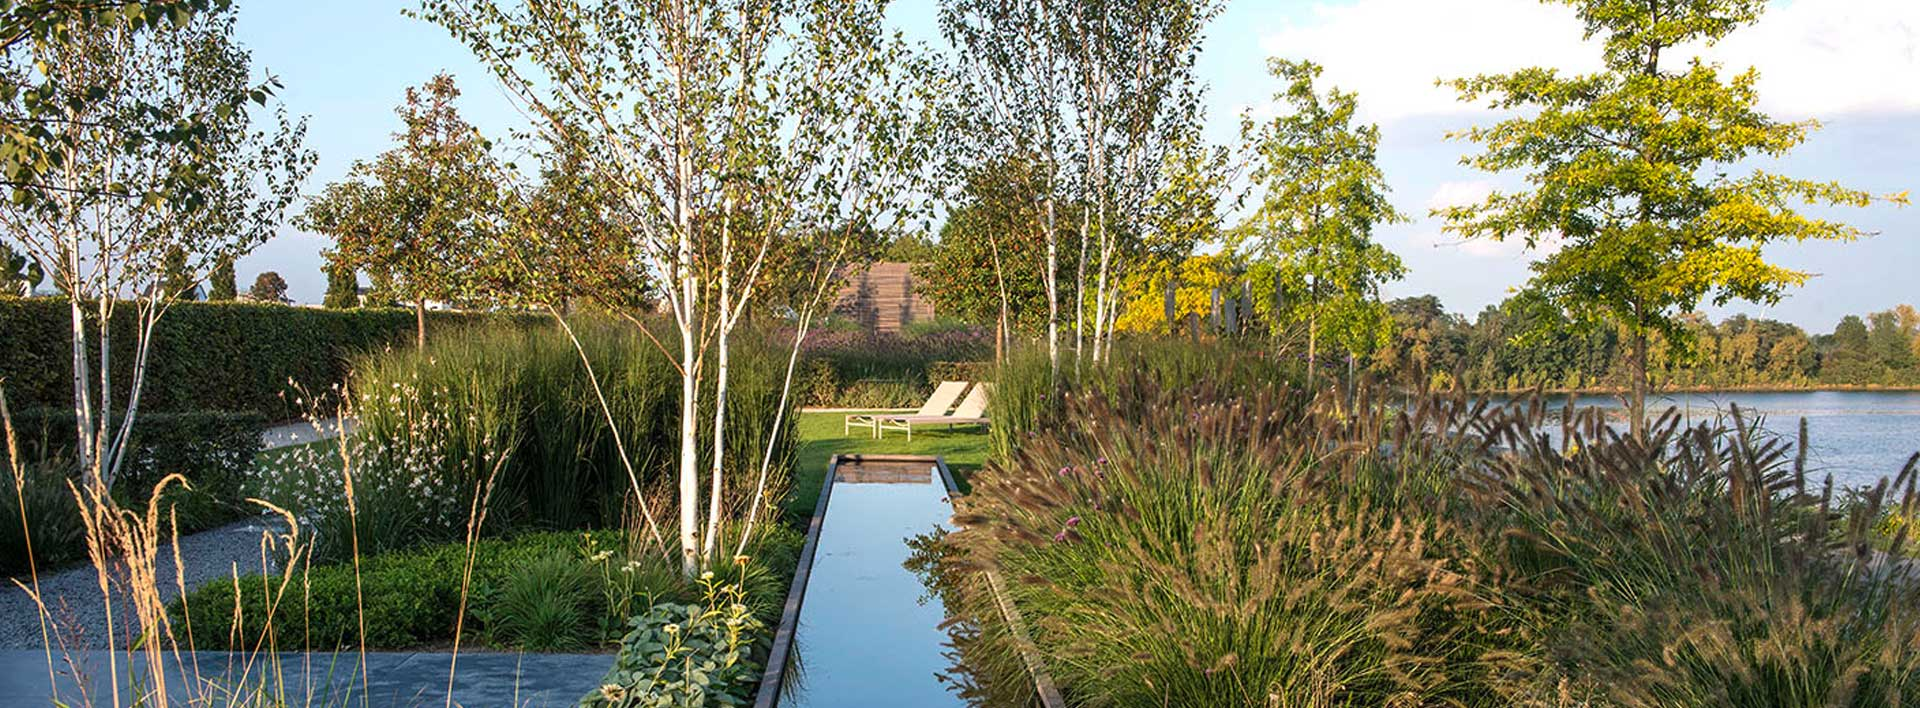 Show garden nearby a lake that contains grasses, a pond, cravel ground and trees